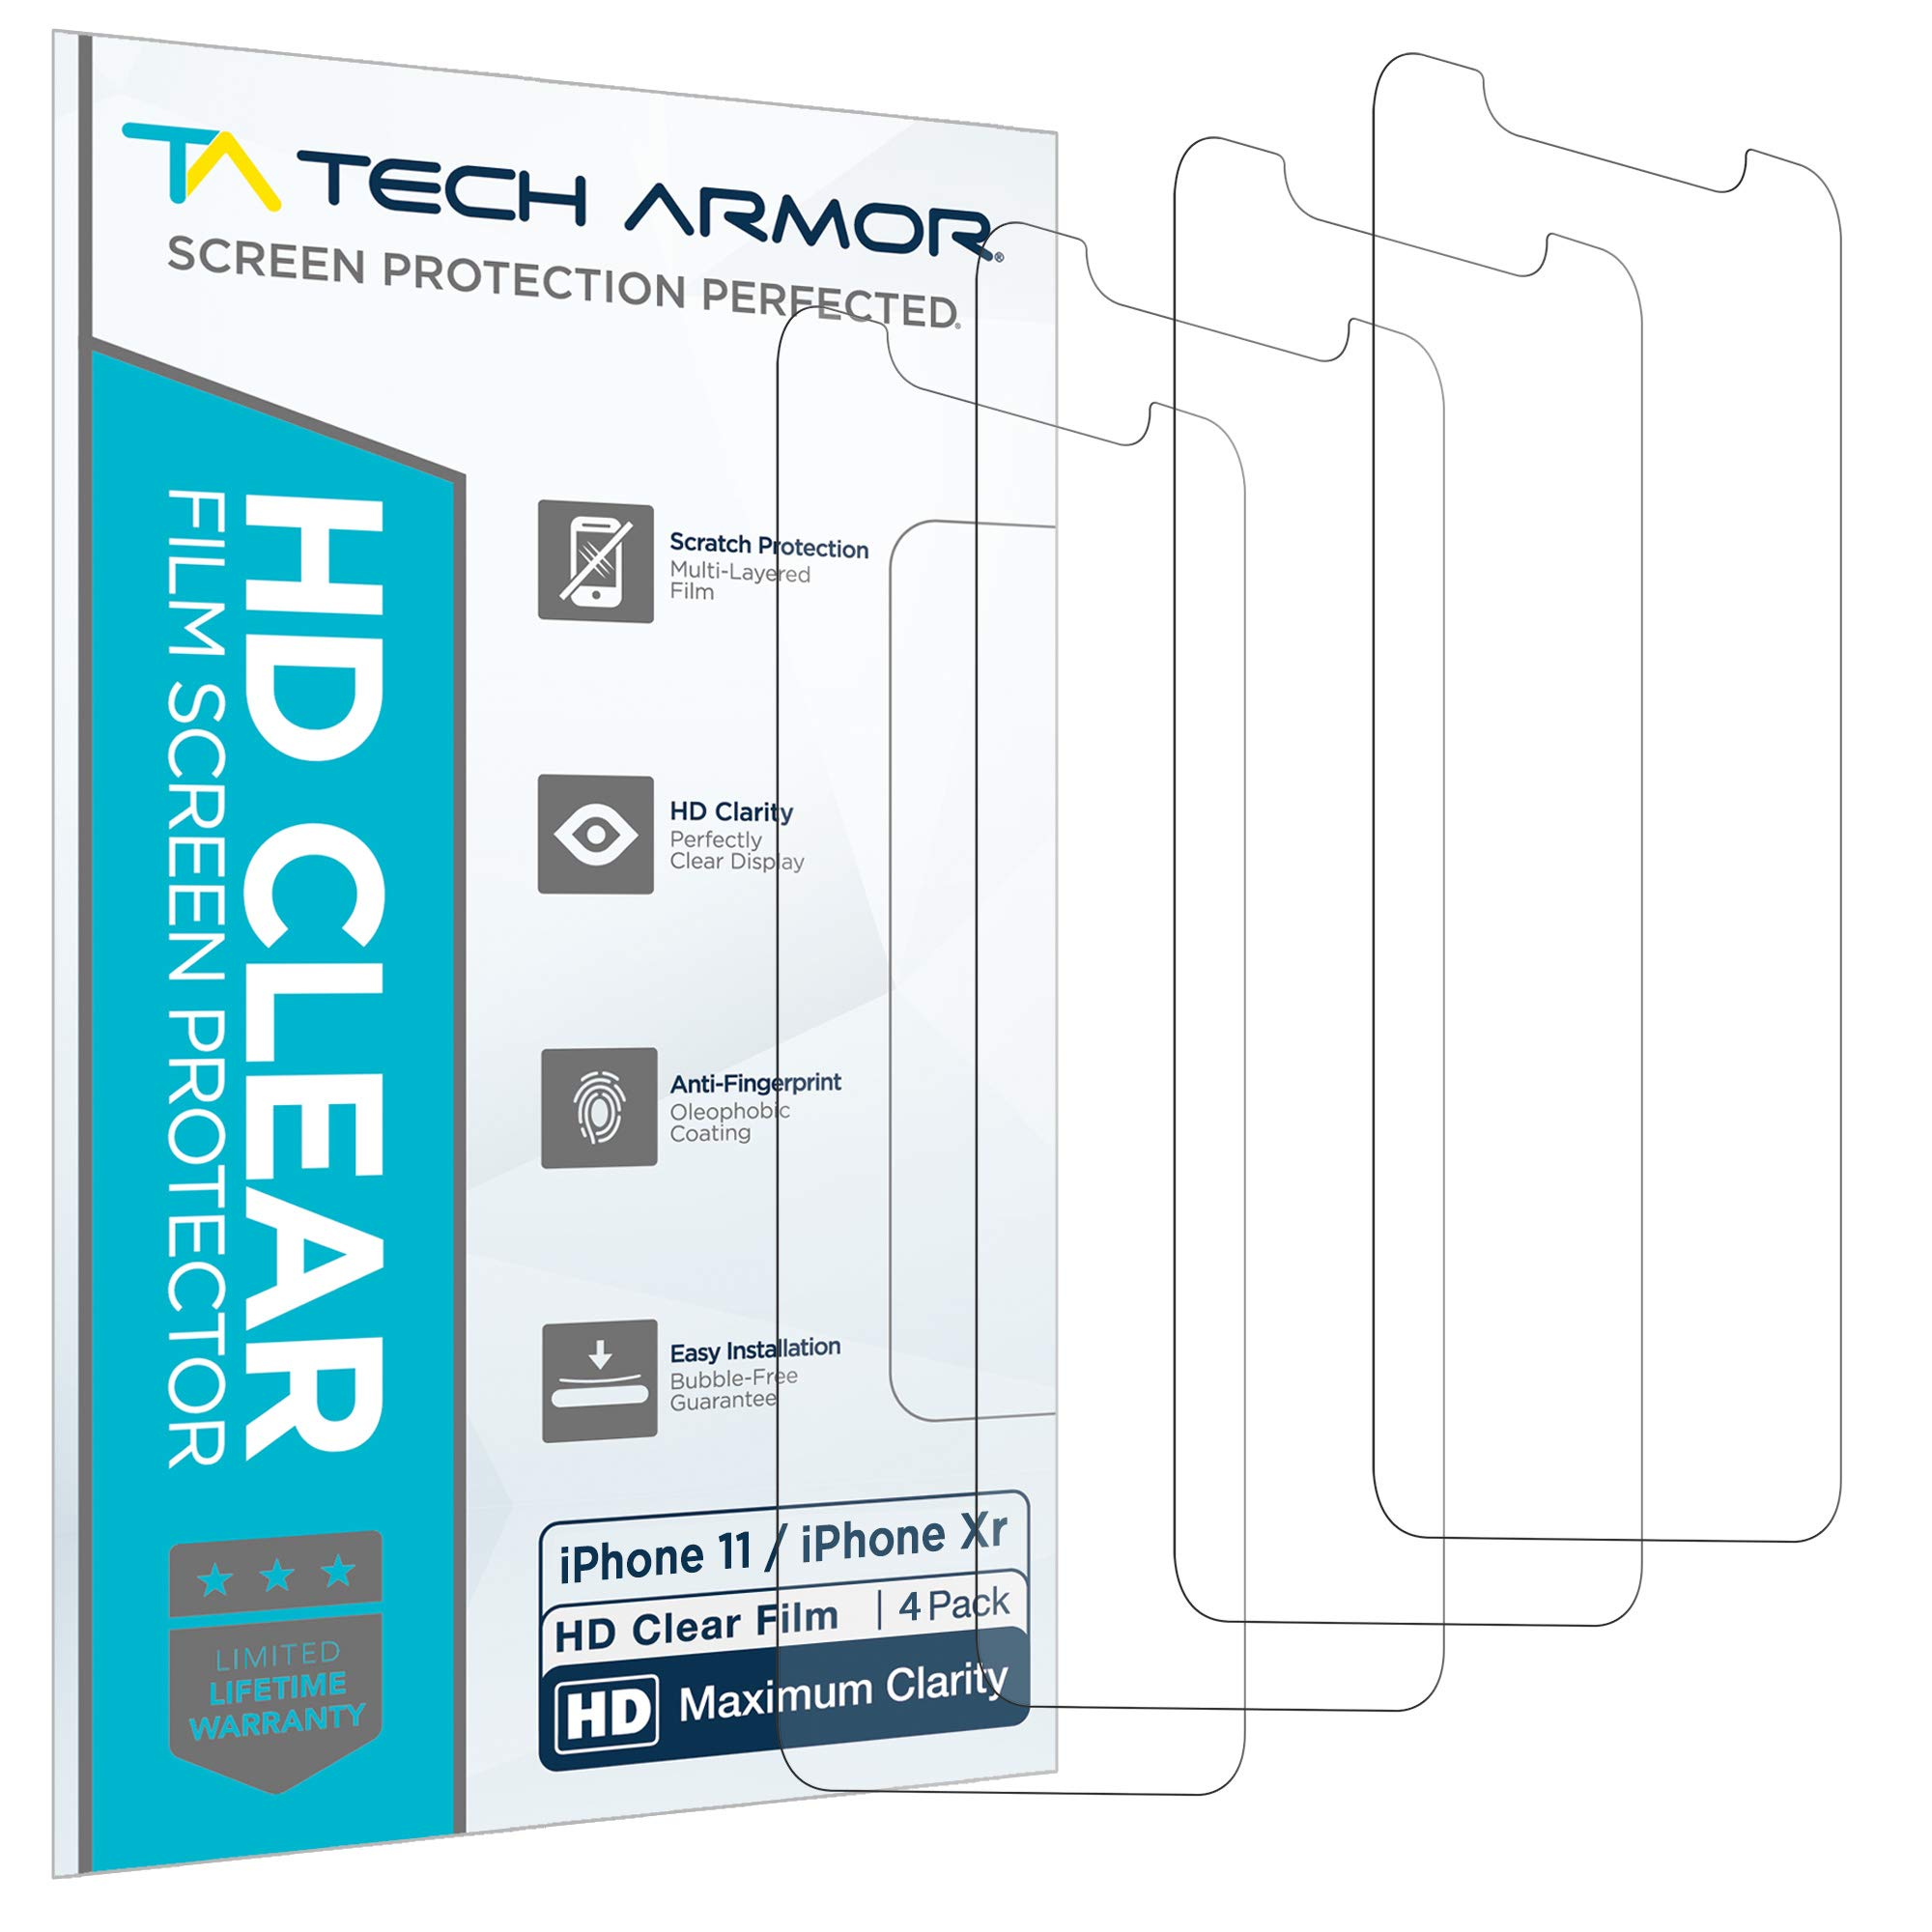 Tech Armor Apple iPhone XR HD Clear Film Screen Protector [4-Pack] Case-Friendly, Scratch Resistant, Haptic Touch Accurate Designed for New 2018 Apple iPhone XR: Amazon.es: Electrónica